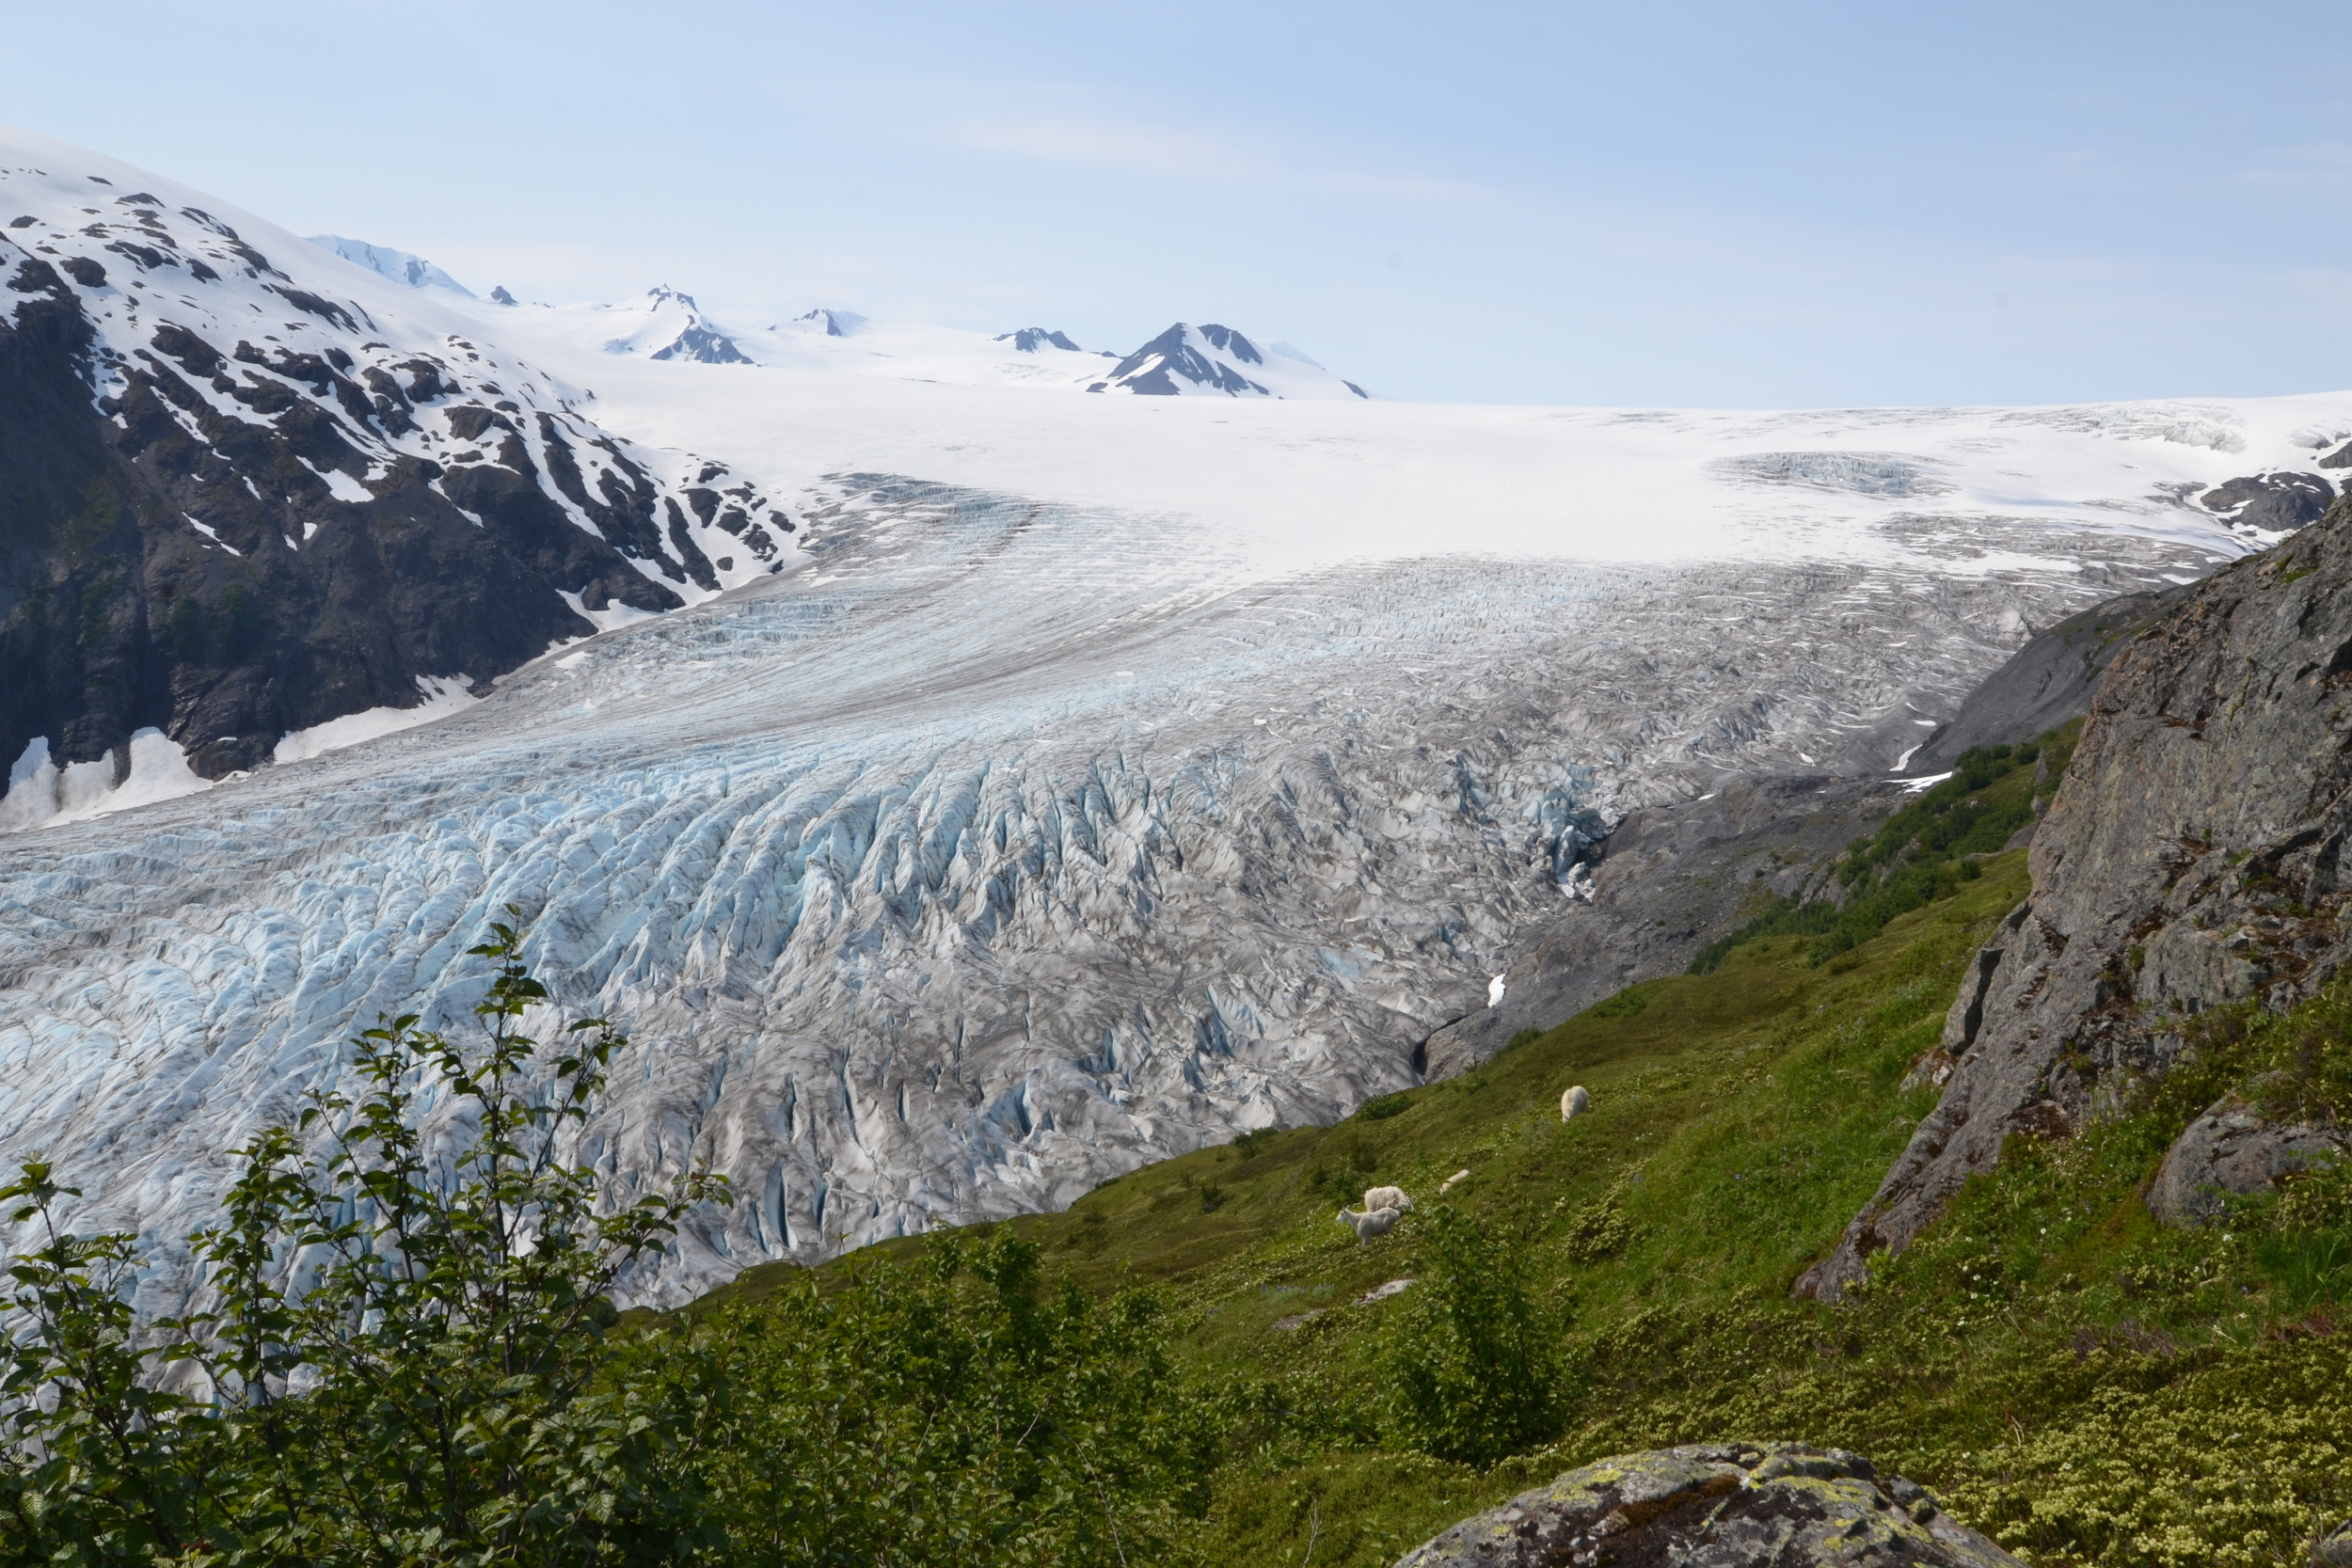 one of the most unforgettable sites (where i fell in love with glaciers) was this spot we picked for our lunch overlooking the glacier almost at the top of the harding ice trail. 2 more hours of trekking to go!  Do you see the mountain goats that joined us?